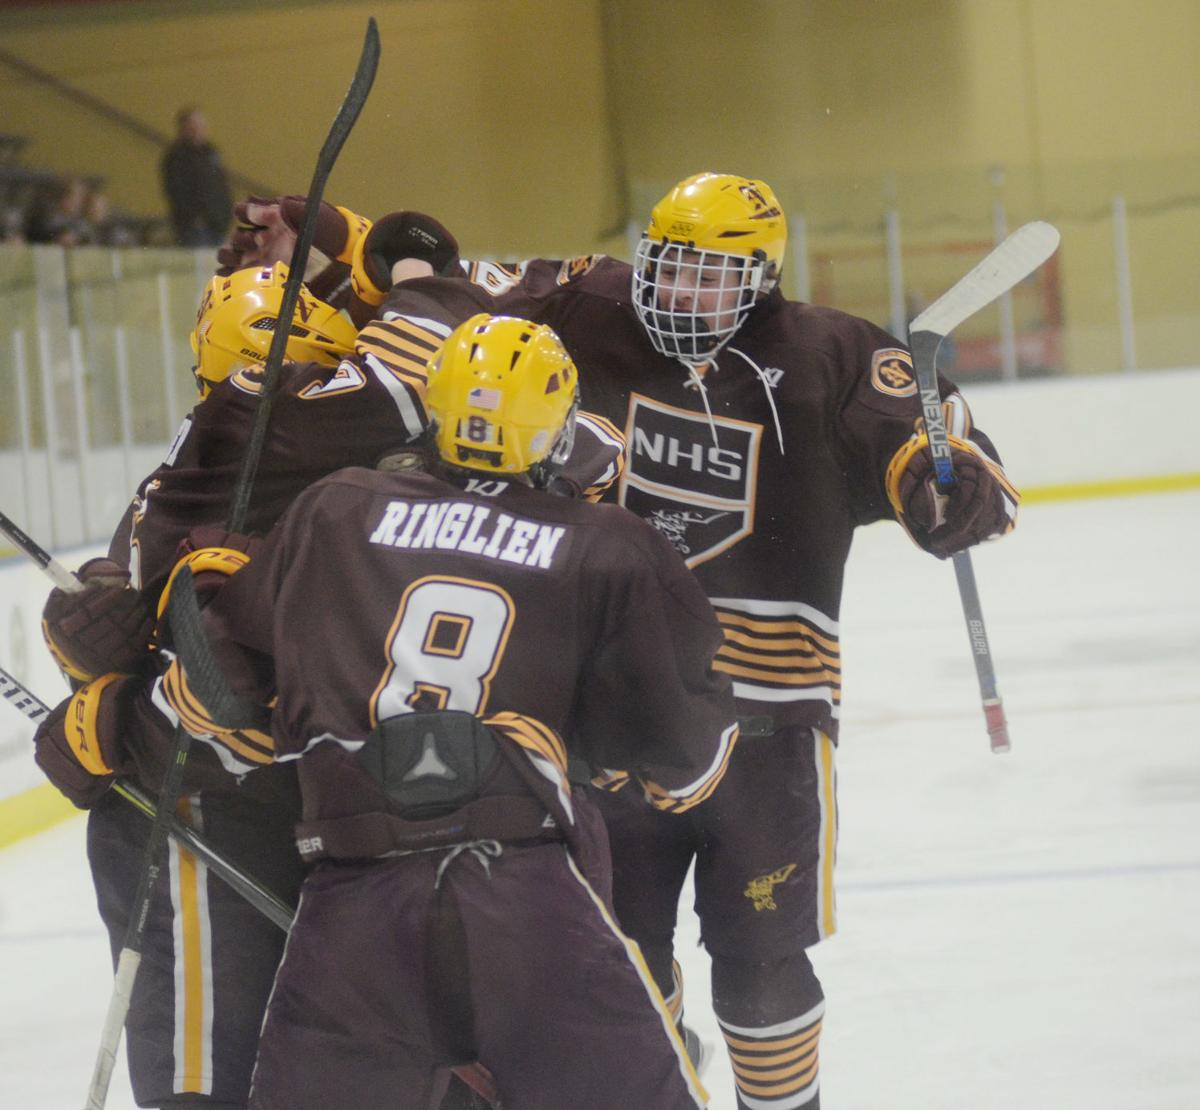 Boys hockey: Northfield tops St. Paul Johnson 4-2 in Section 4A playoffs